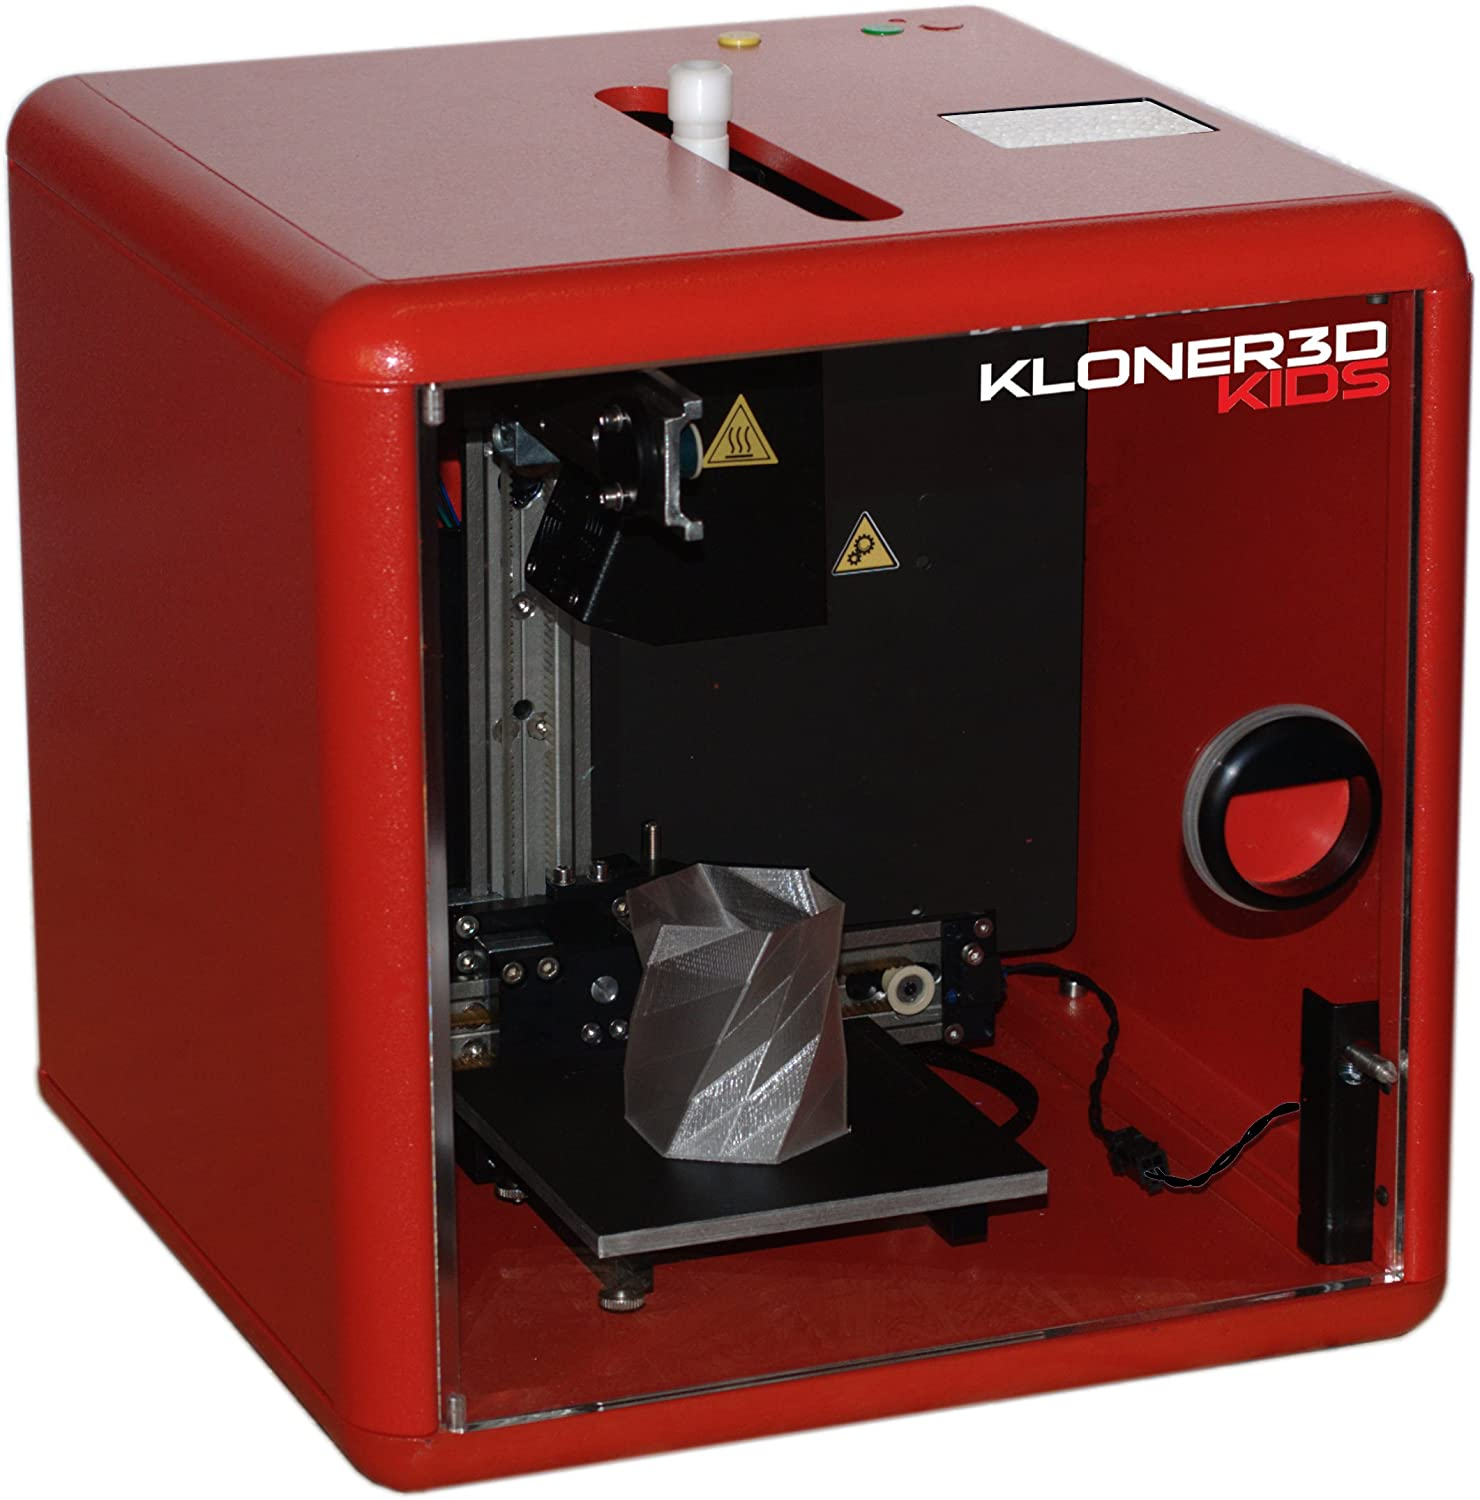 kloner3d Kids 5801 impresora 3d, 120 x 120 x 120 mm: Amazon.es ...